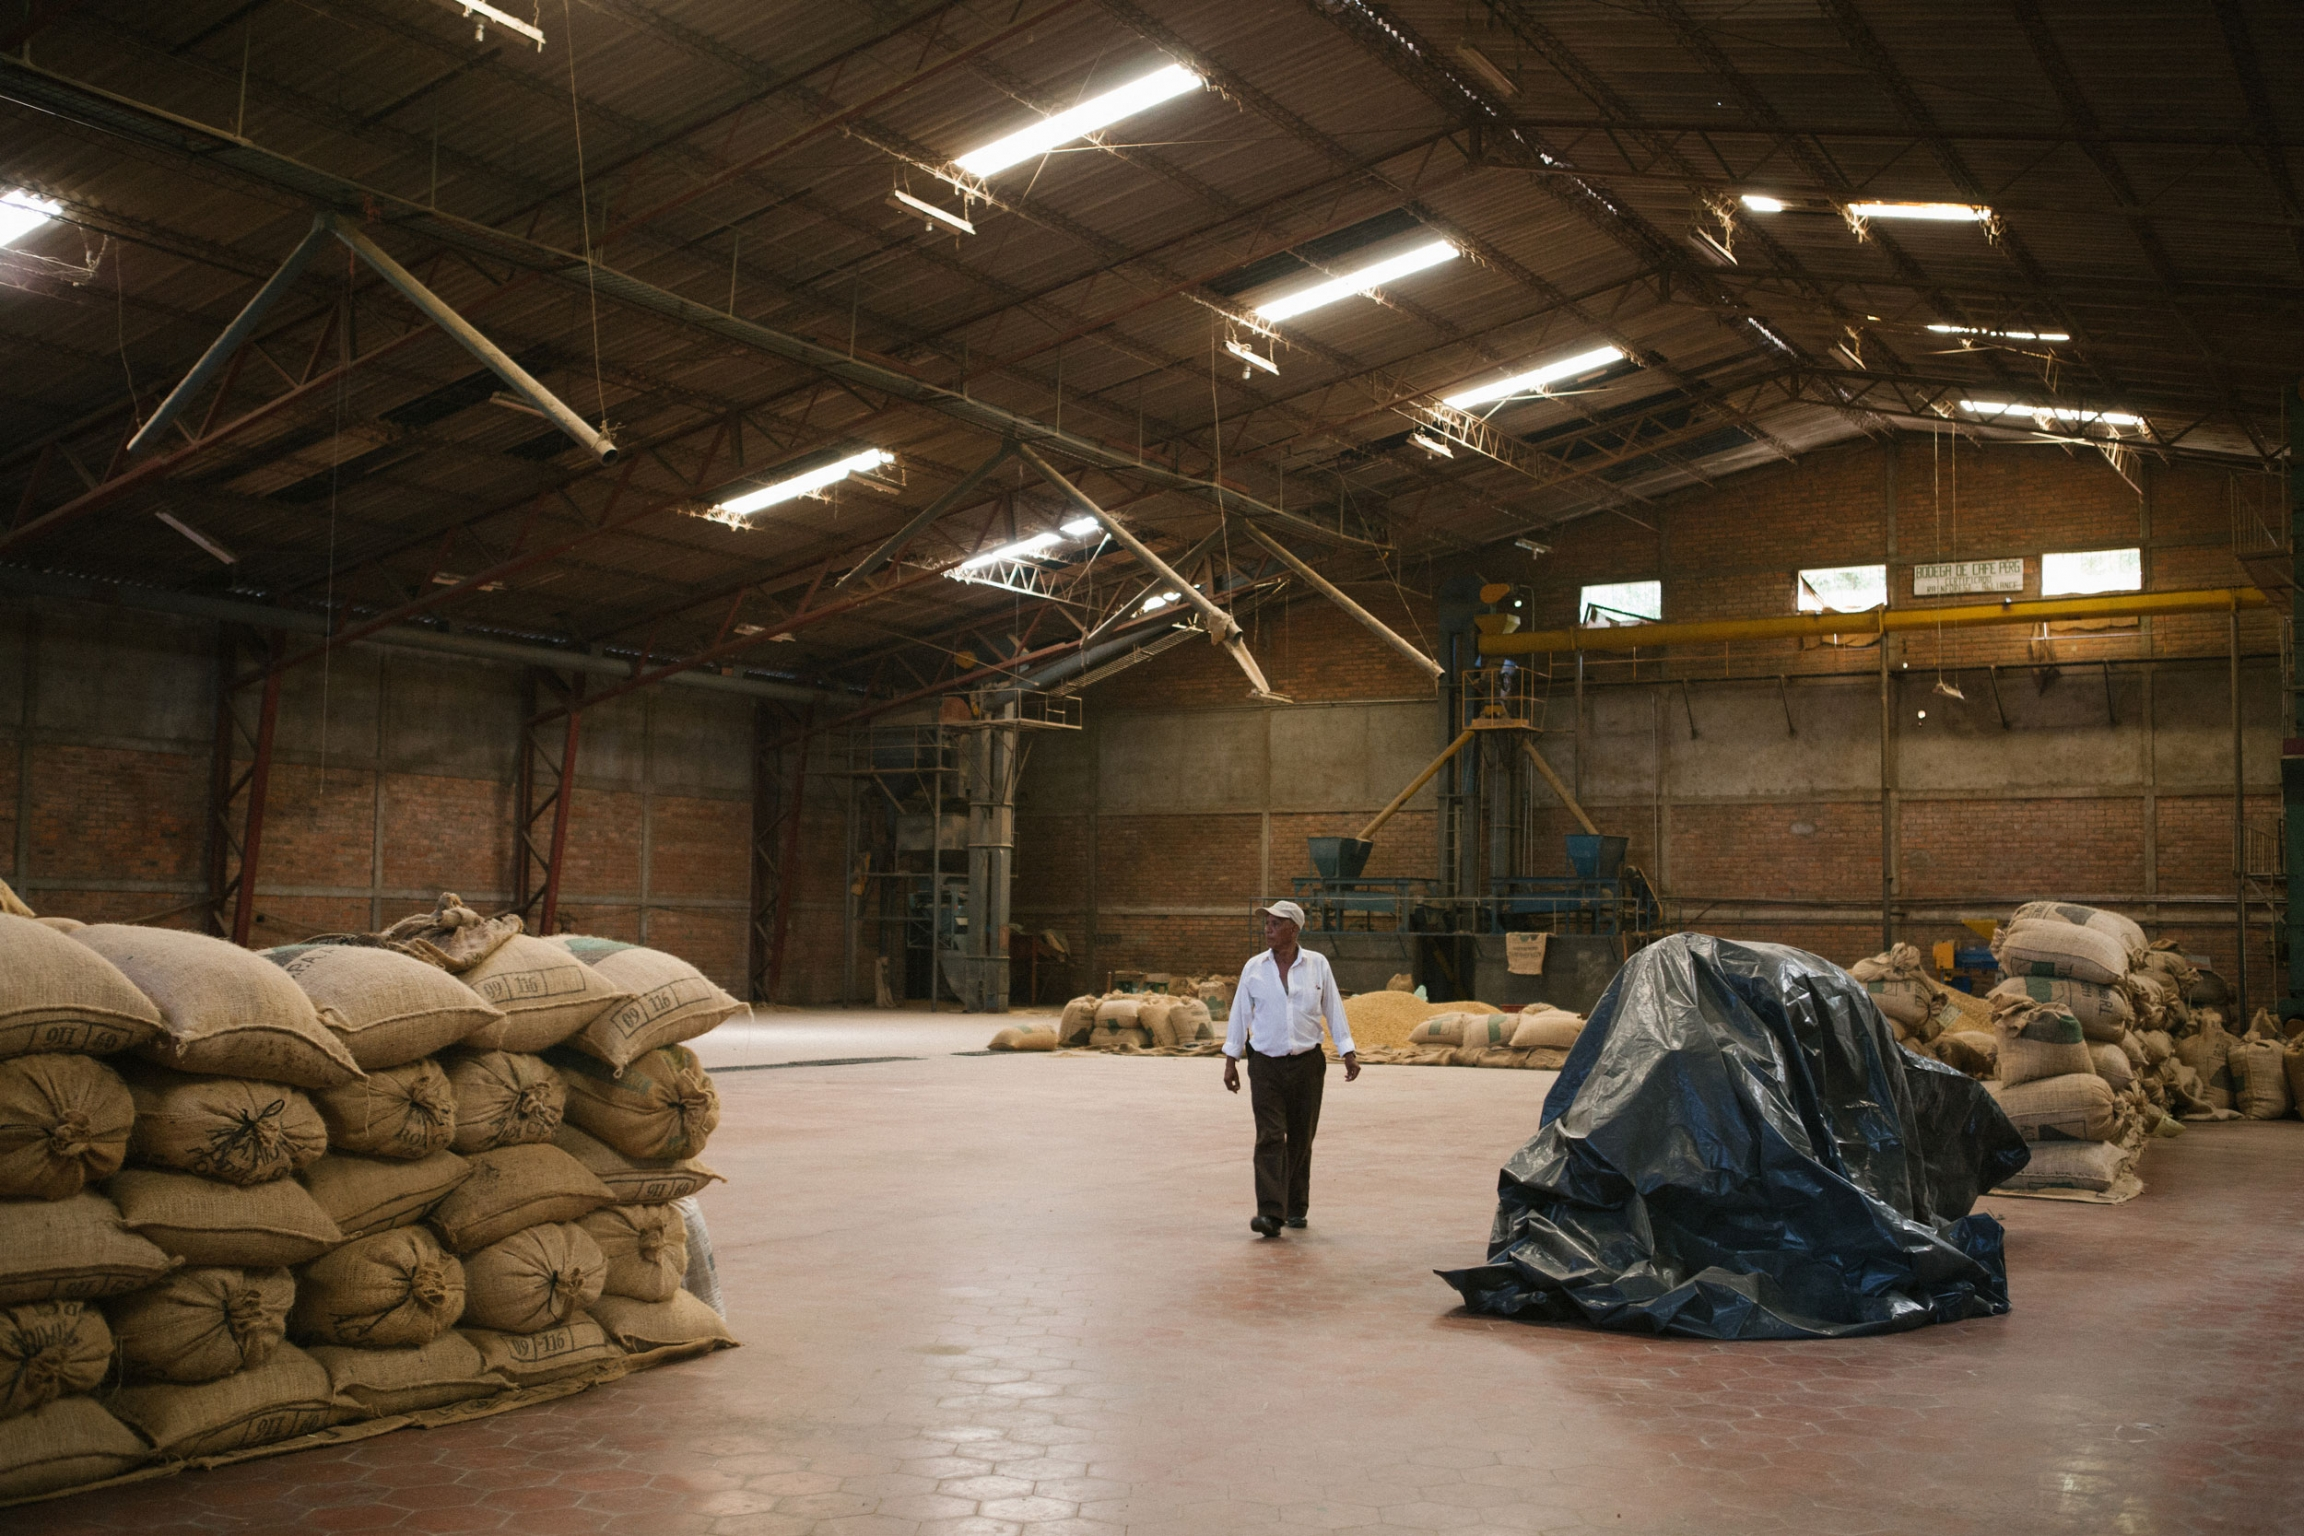 A man wearing a white shirt is shown walking through a large warehouse with large bags of coffee stacked.